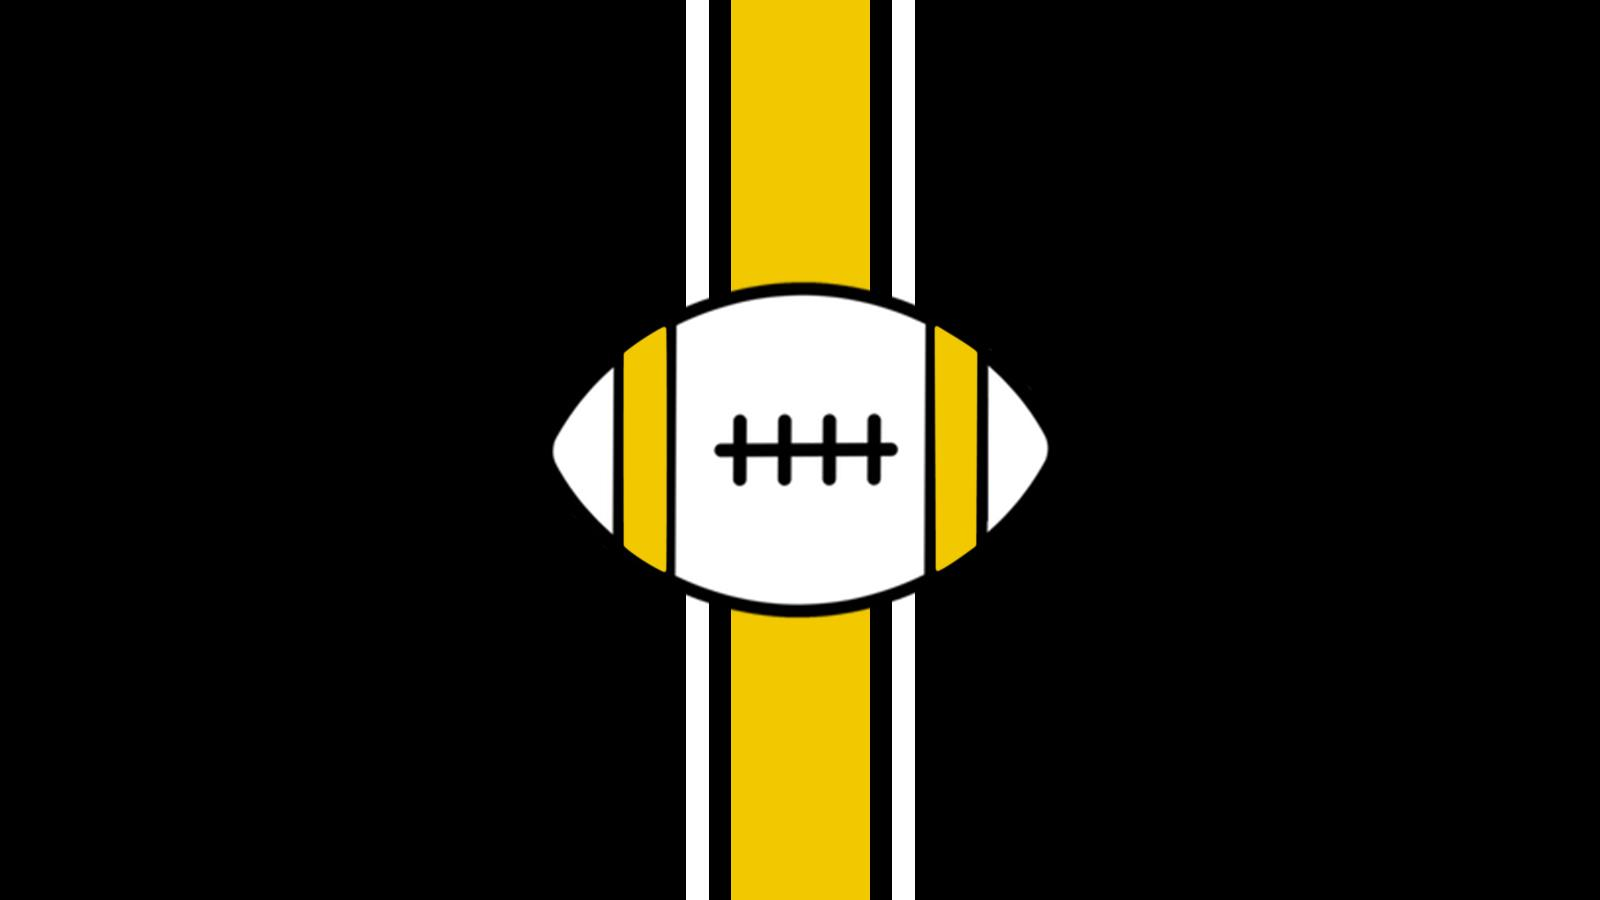 AFC Championship Game - TBD at Pittsburgh Steelers (Date TBD) (If Necessary)